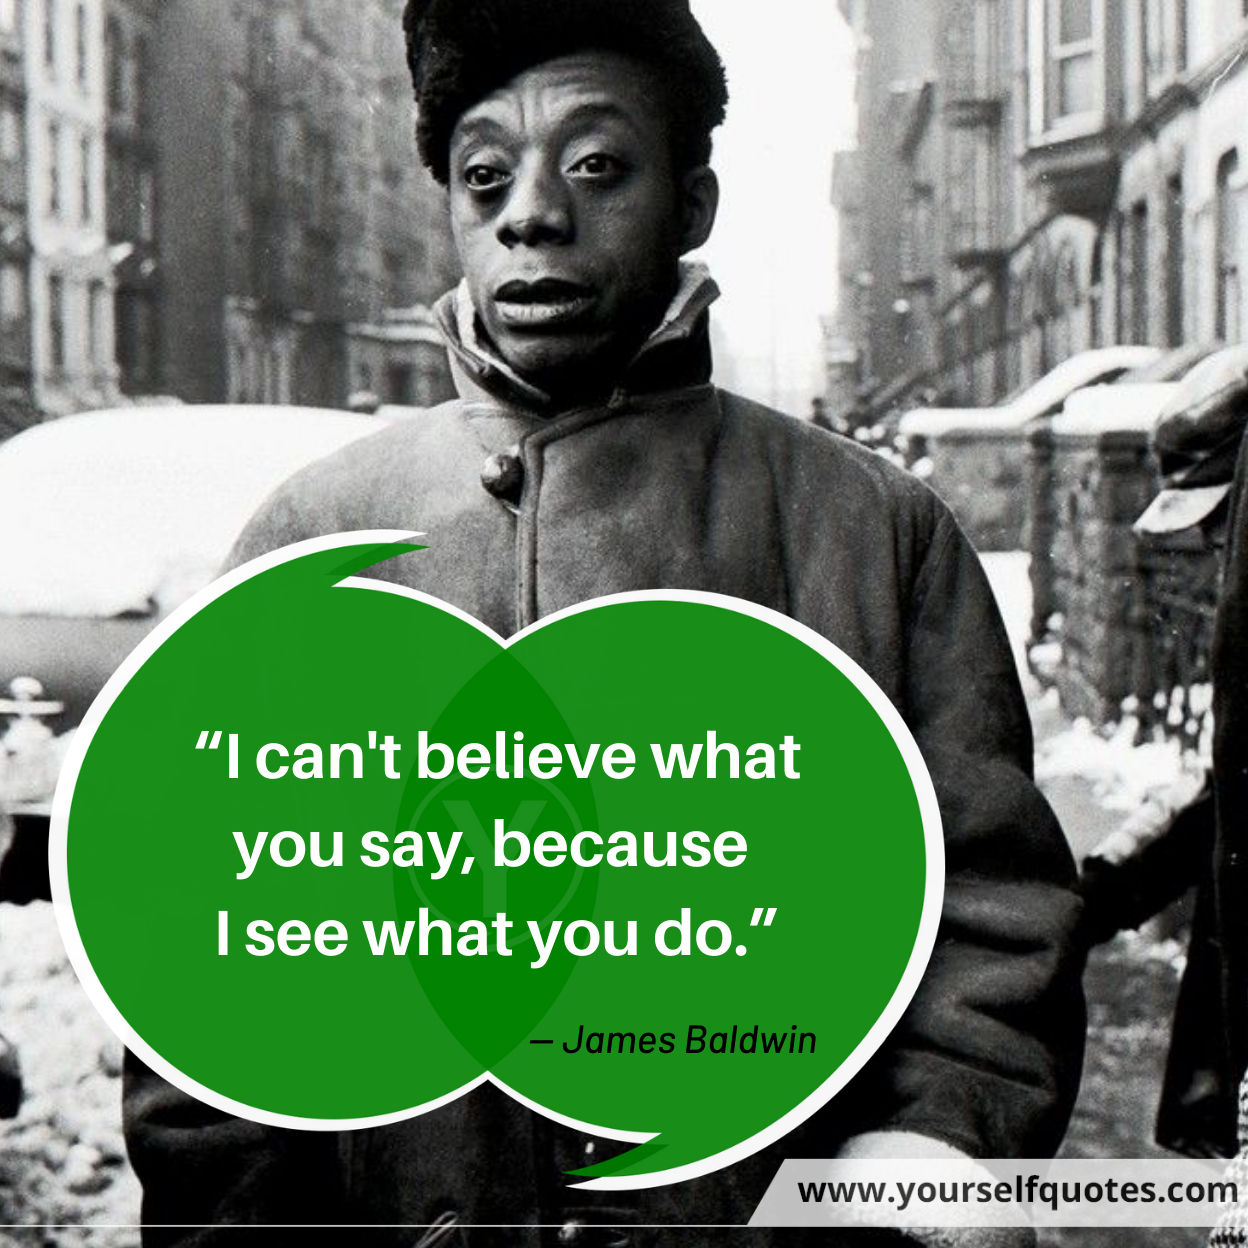 James Baldwin Quote Images